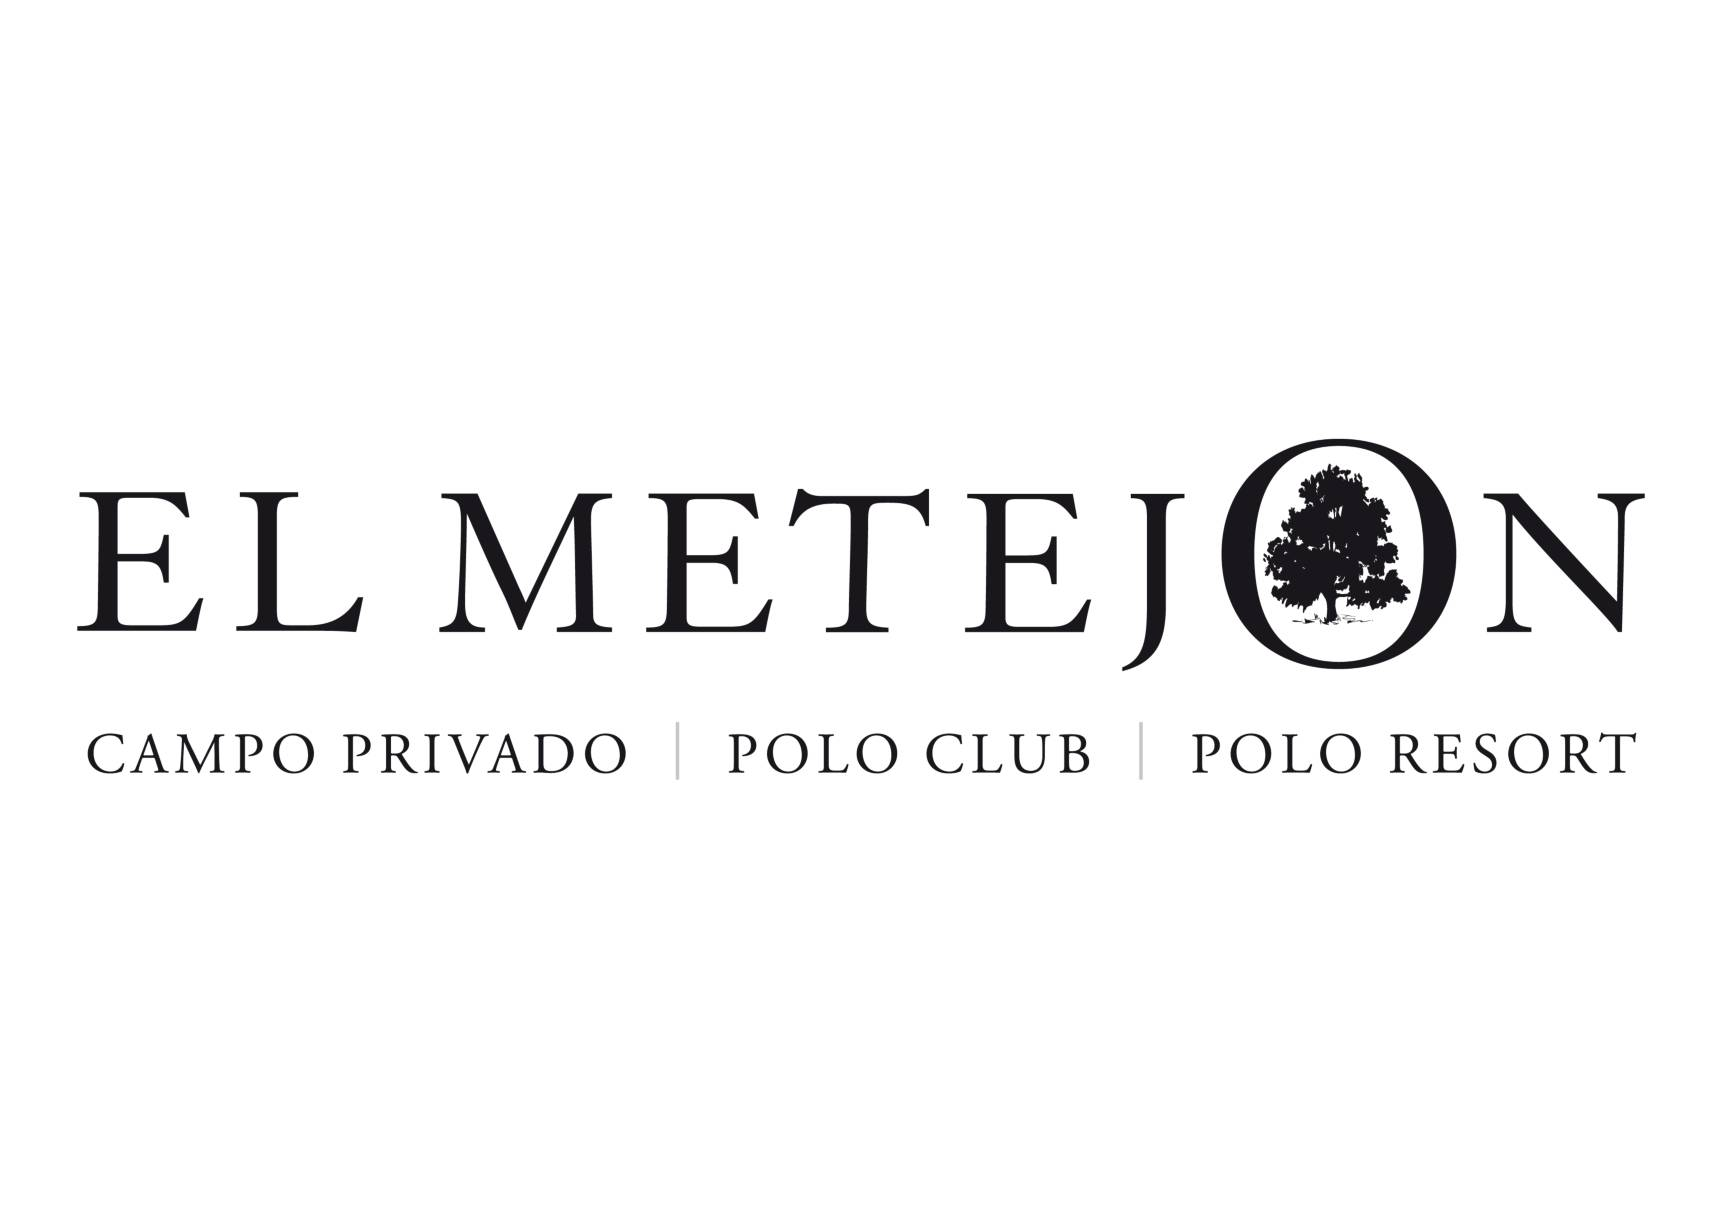 El Metejon polo resort